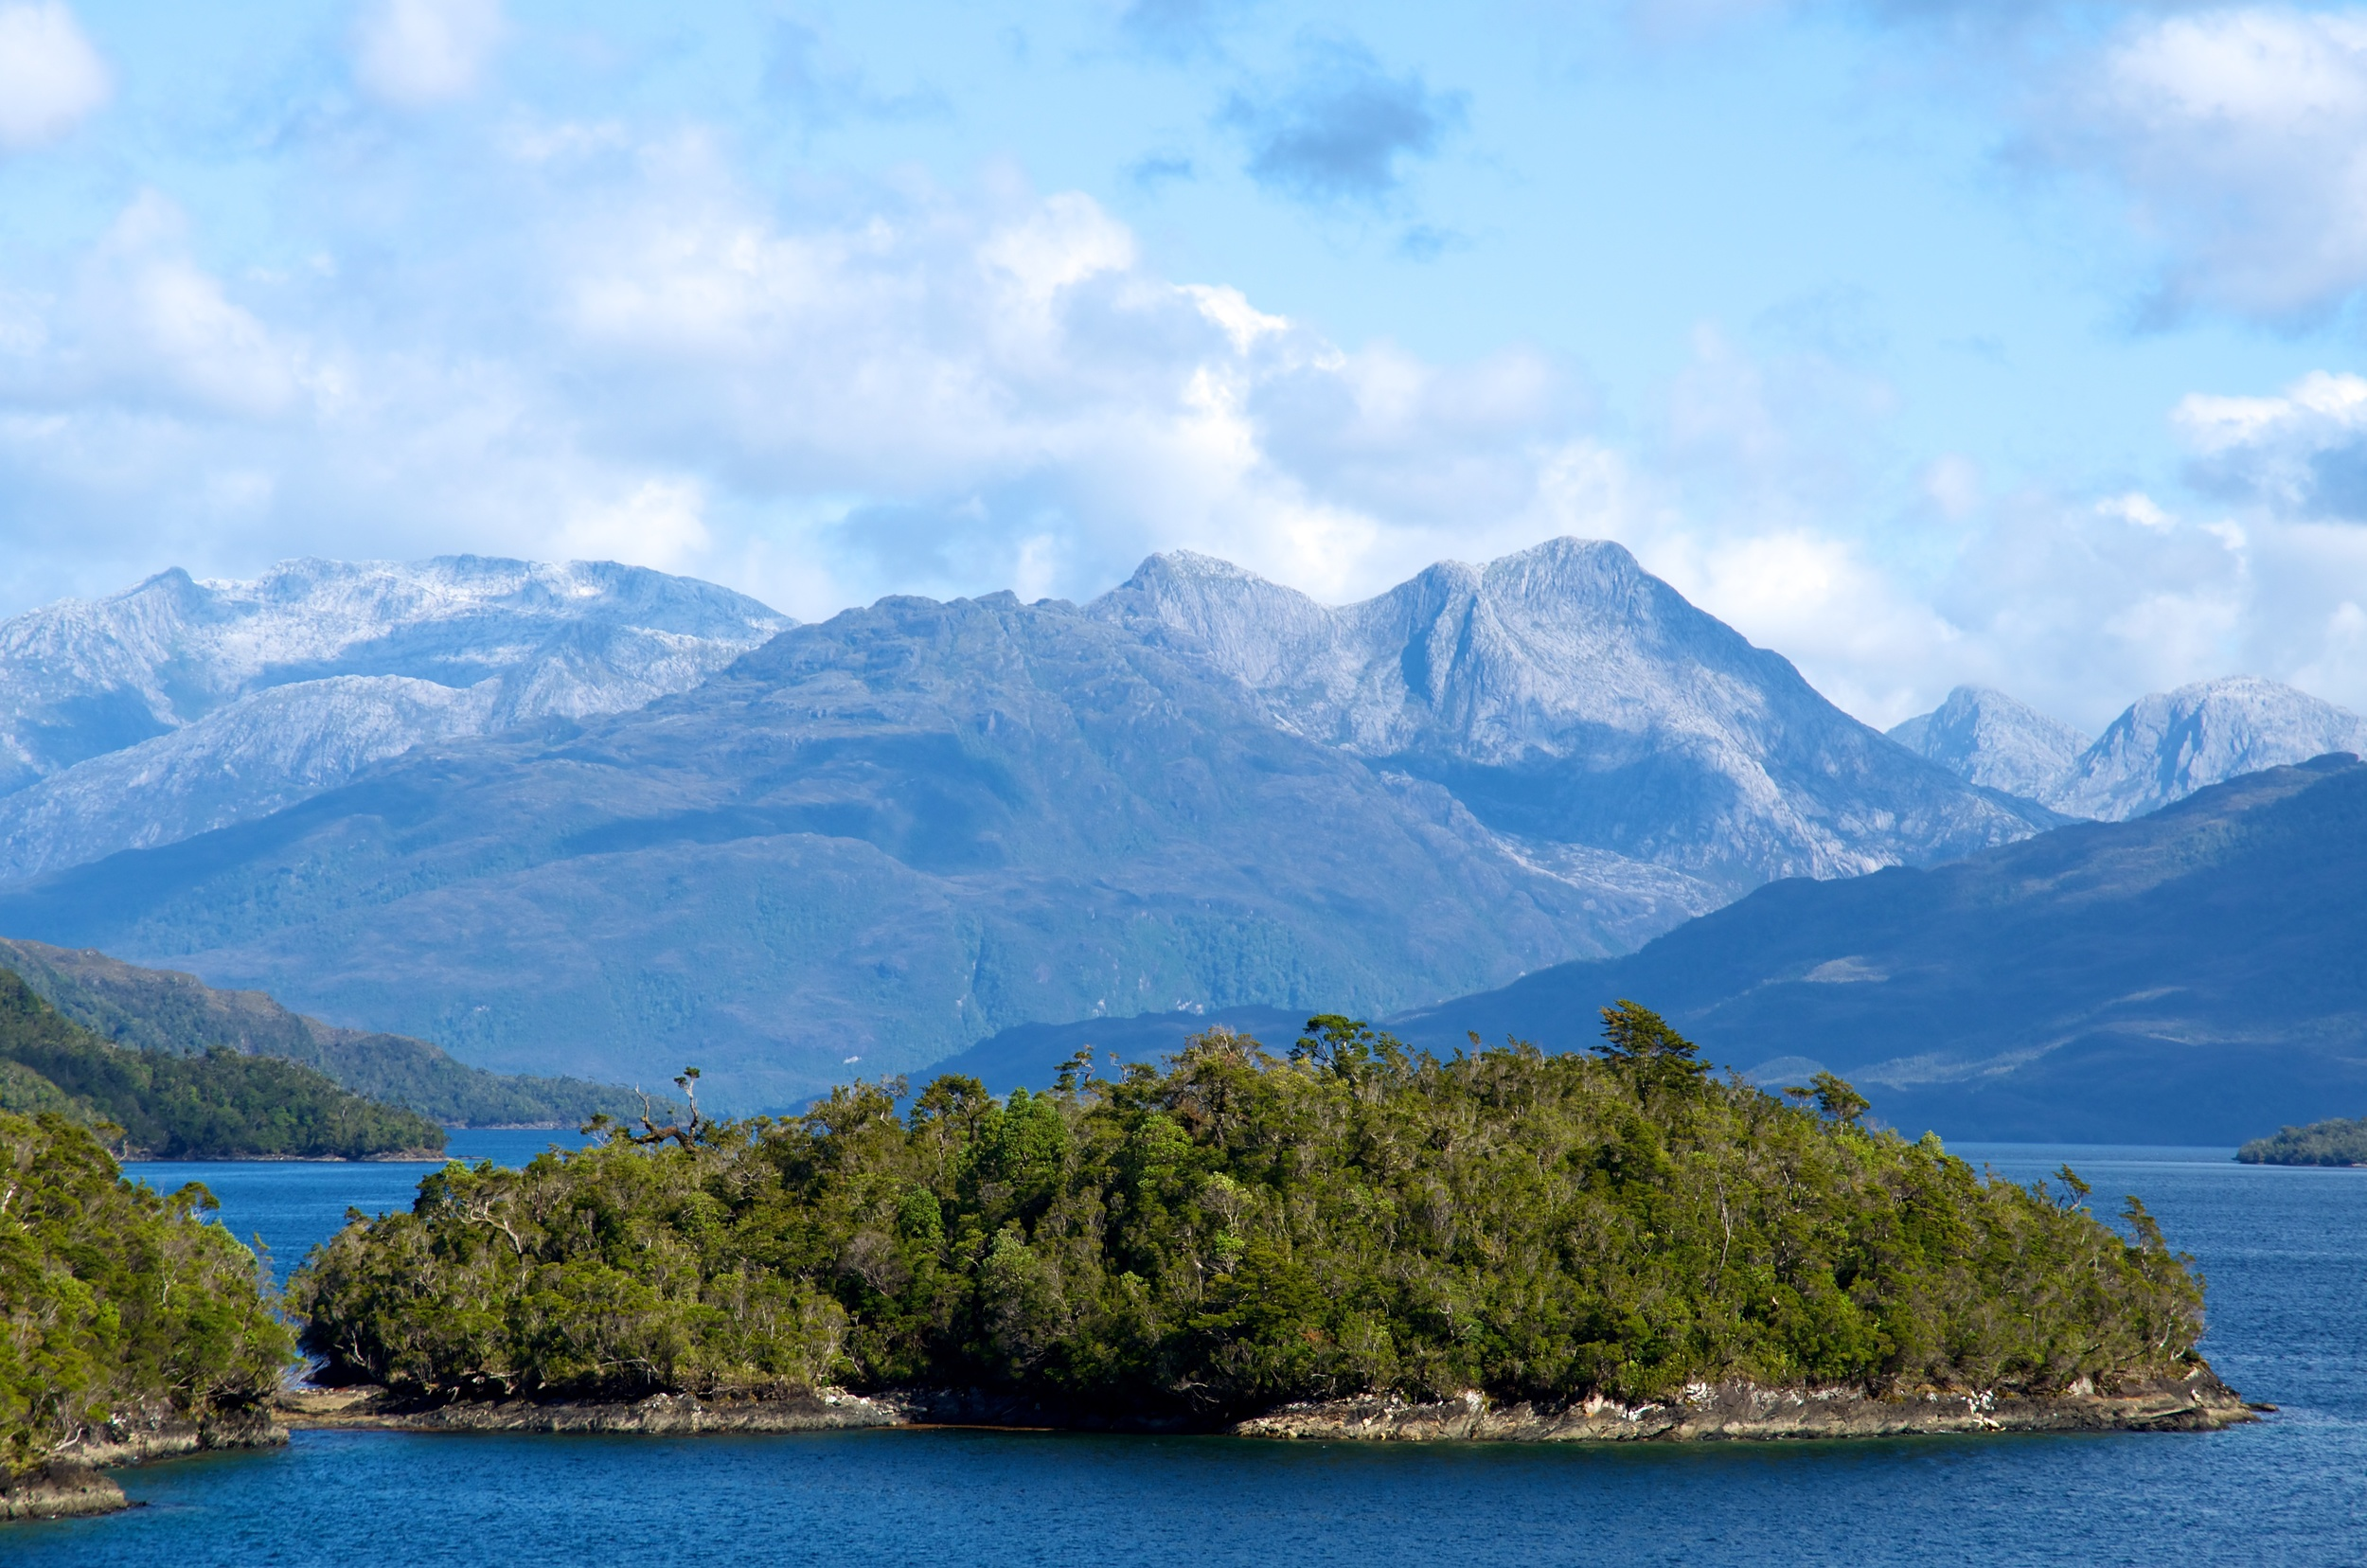 View of Andes from ferry, Chile, 31 Mar 2012